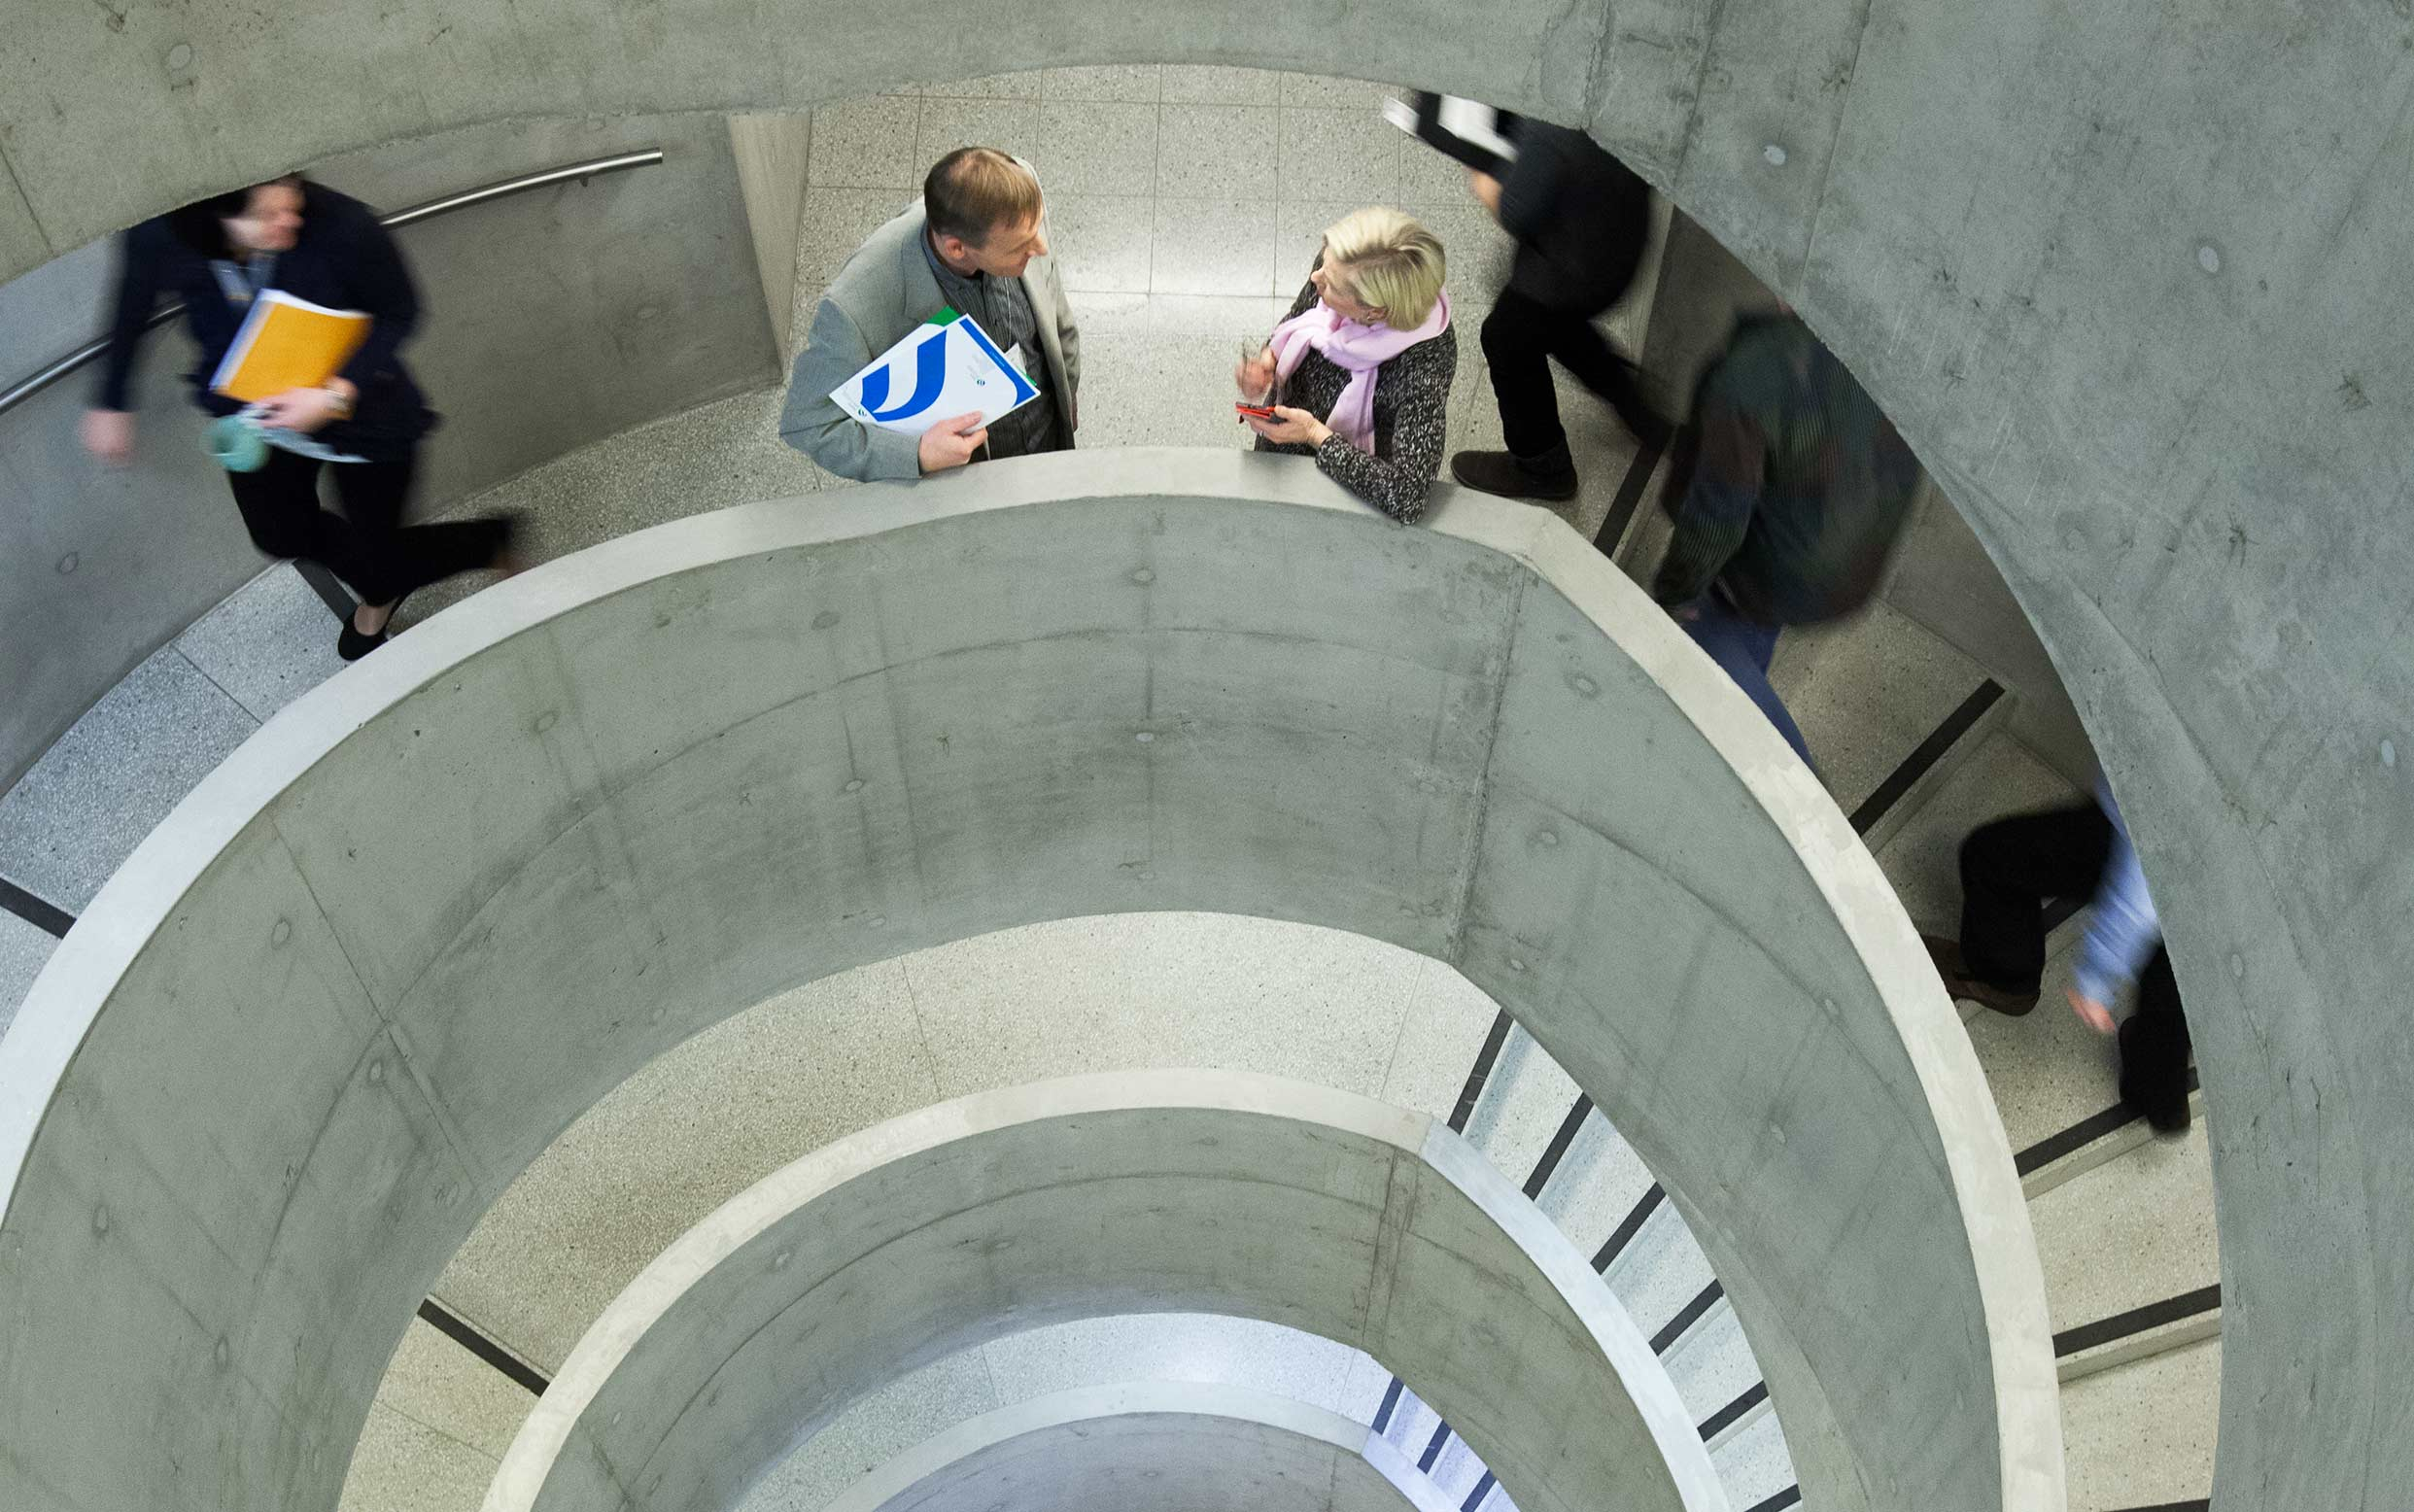 People on staircase.